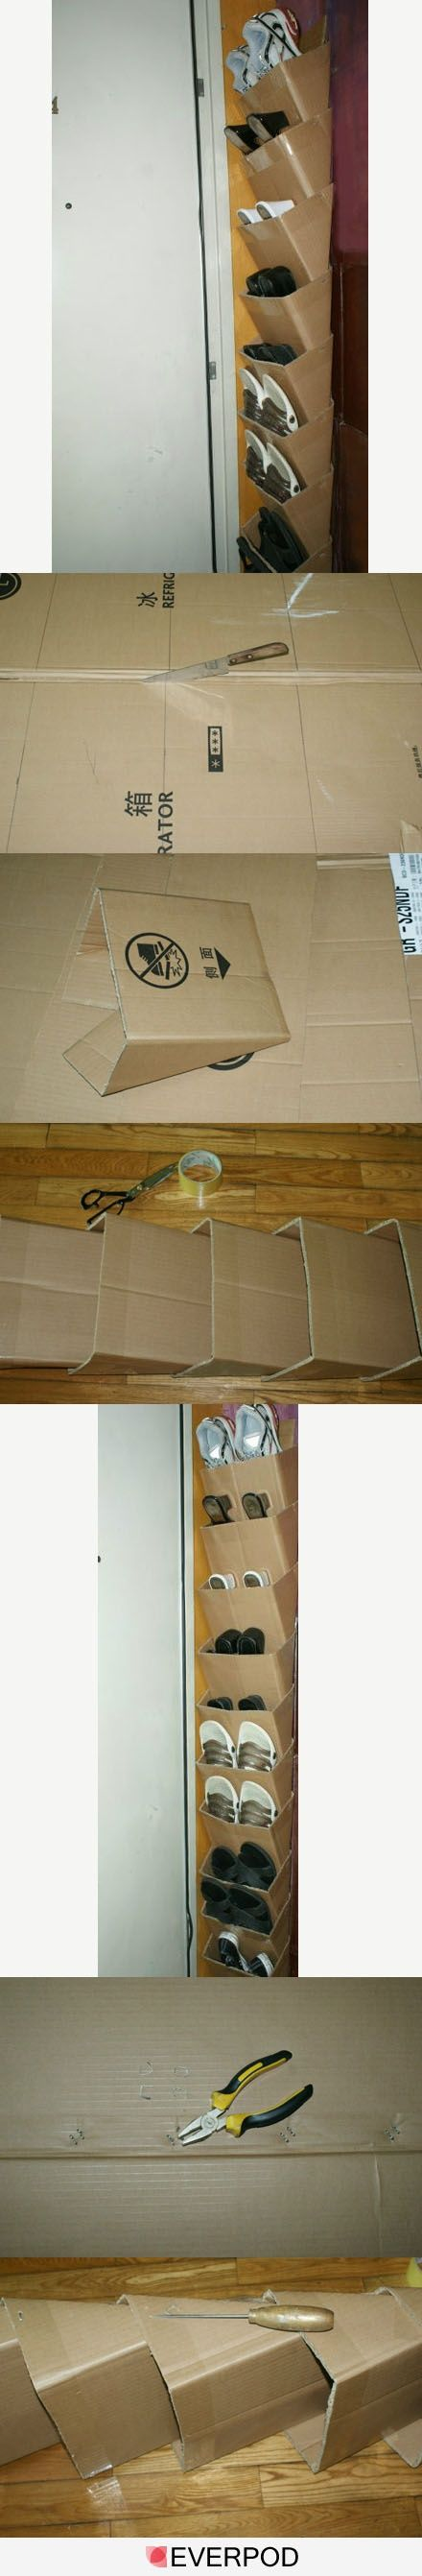 Cardboard organizational slots ~ A little paint and hundreds of uses. - I love that this is light weight and won't scratch my door. People can make anything. The sky is the limit!